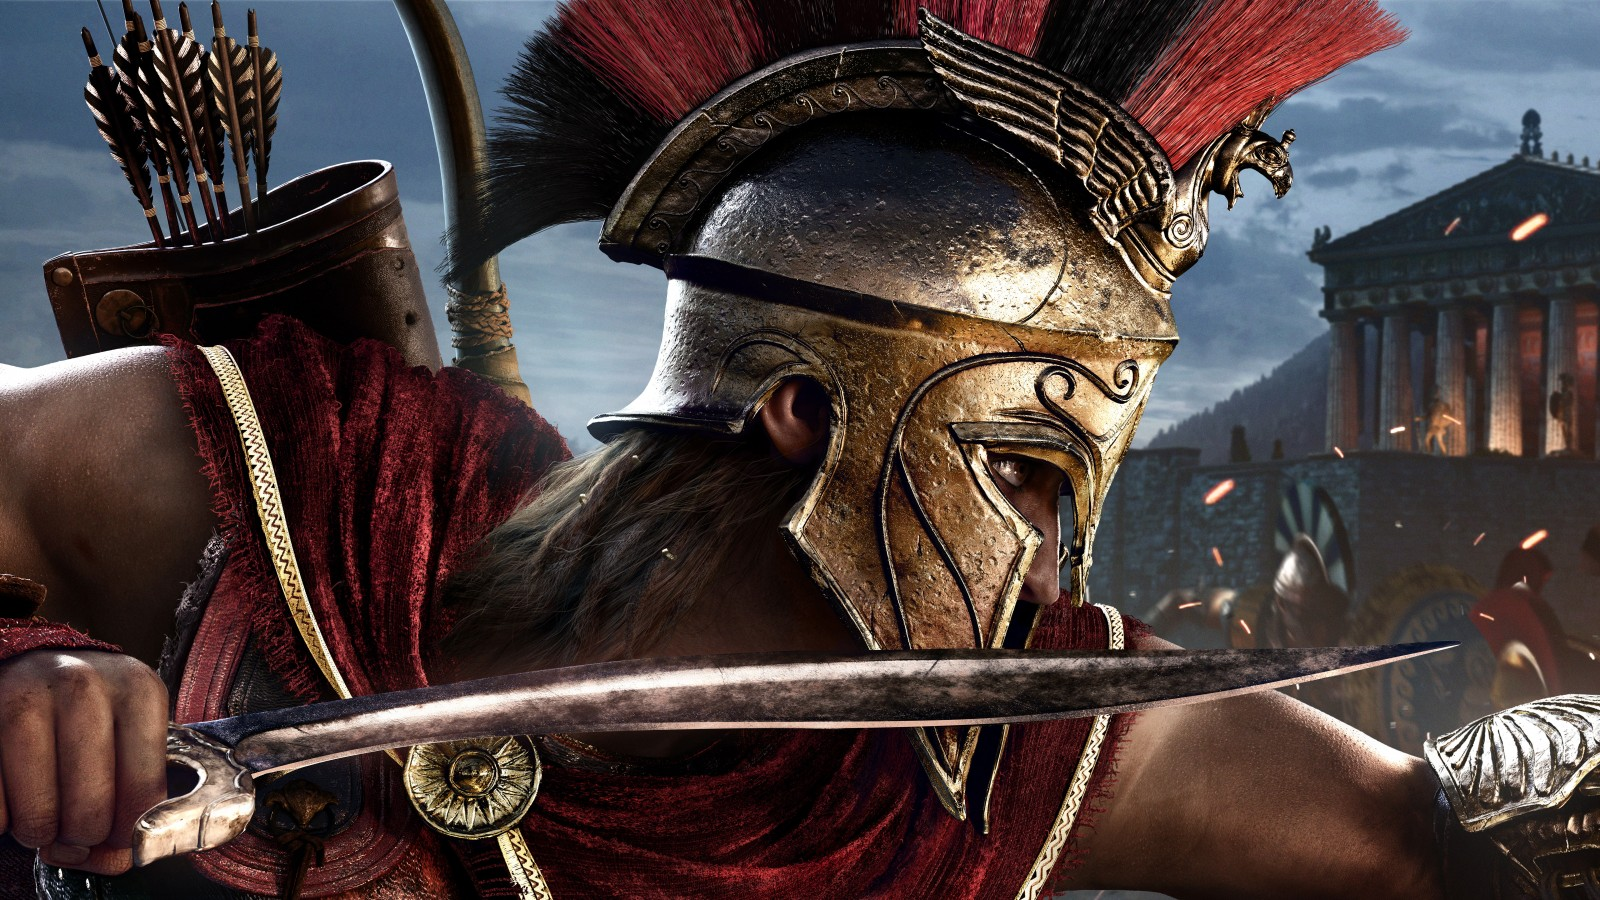 Expendables Wallpaper Iphone Assassin S Creed Odyssey E3 2018 4k 8k Wallpapers Hd